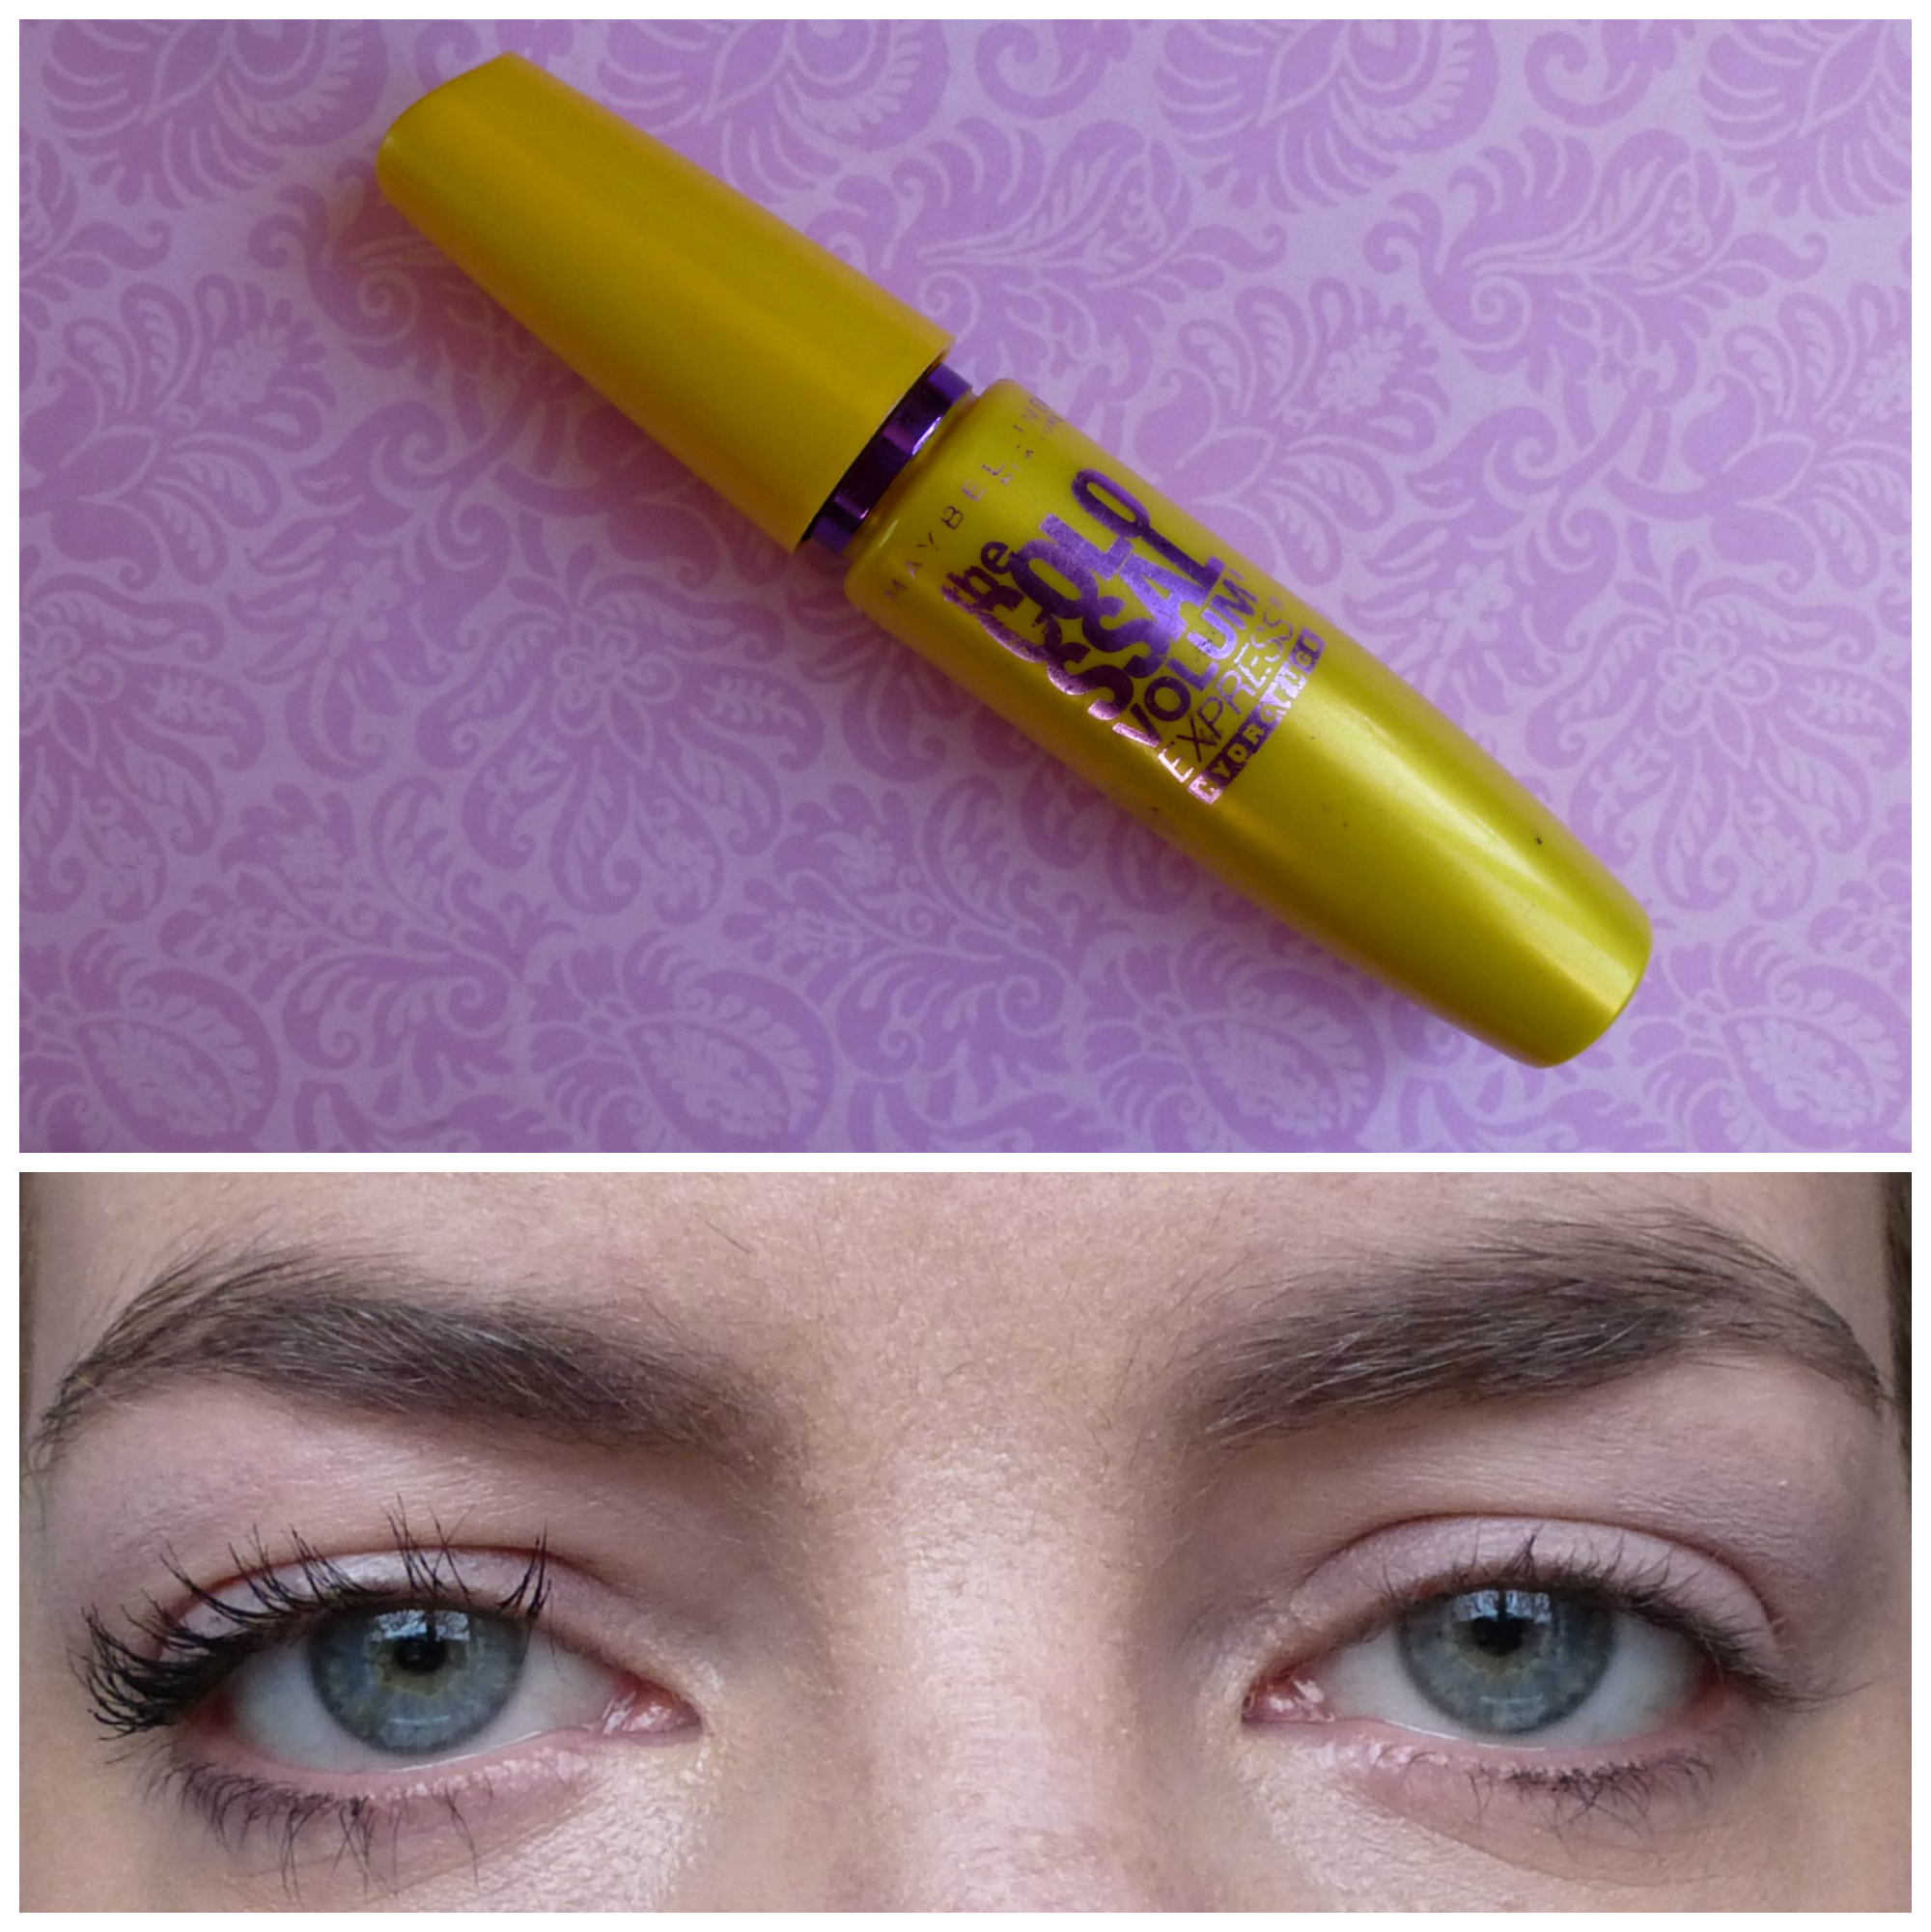 Colossal Maybelline Mascara – Doves and Roses